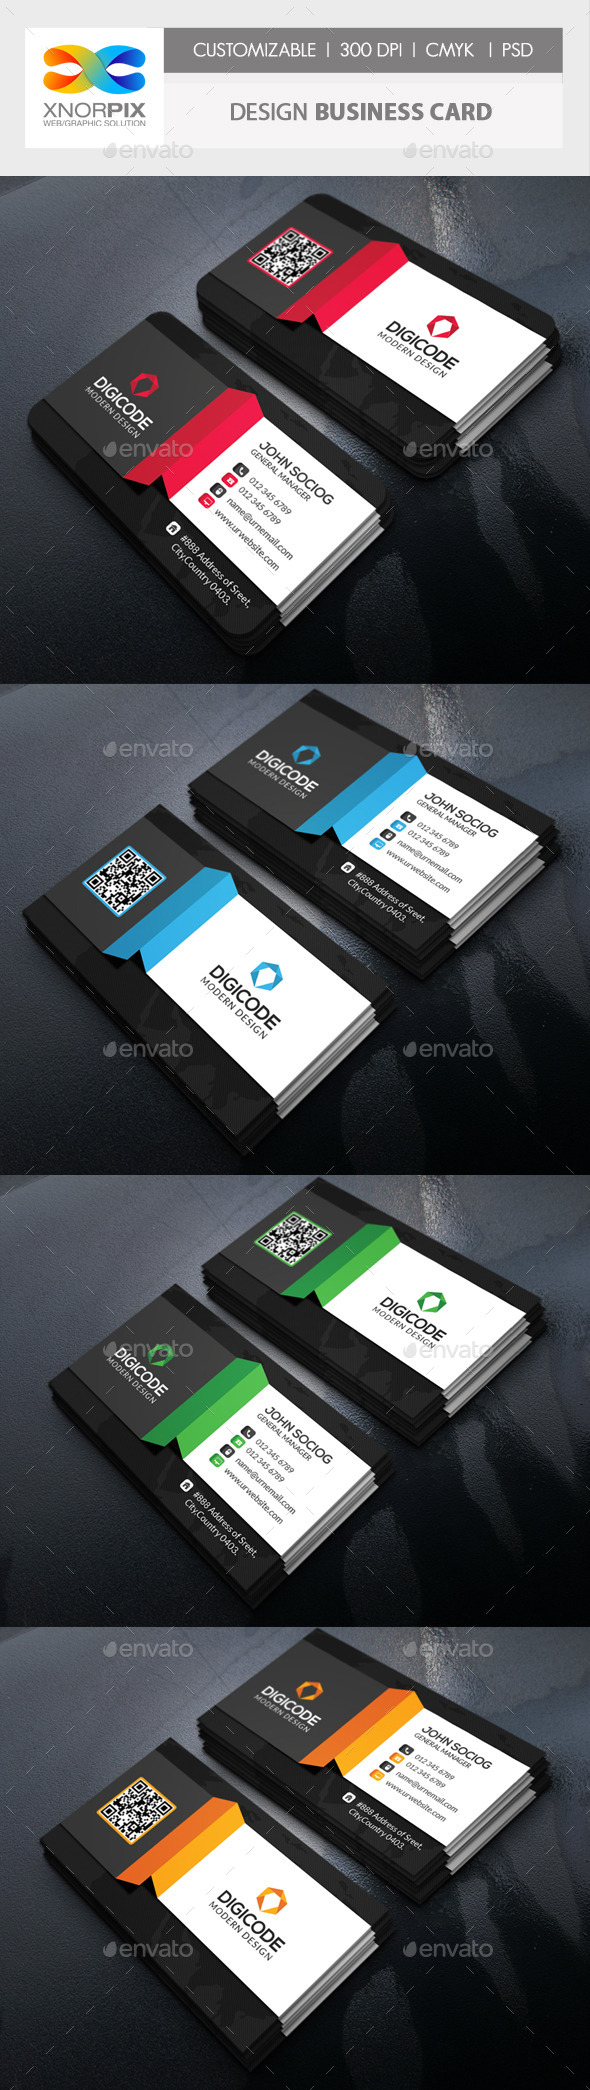 Design Business Card - Corporate Business Cards